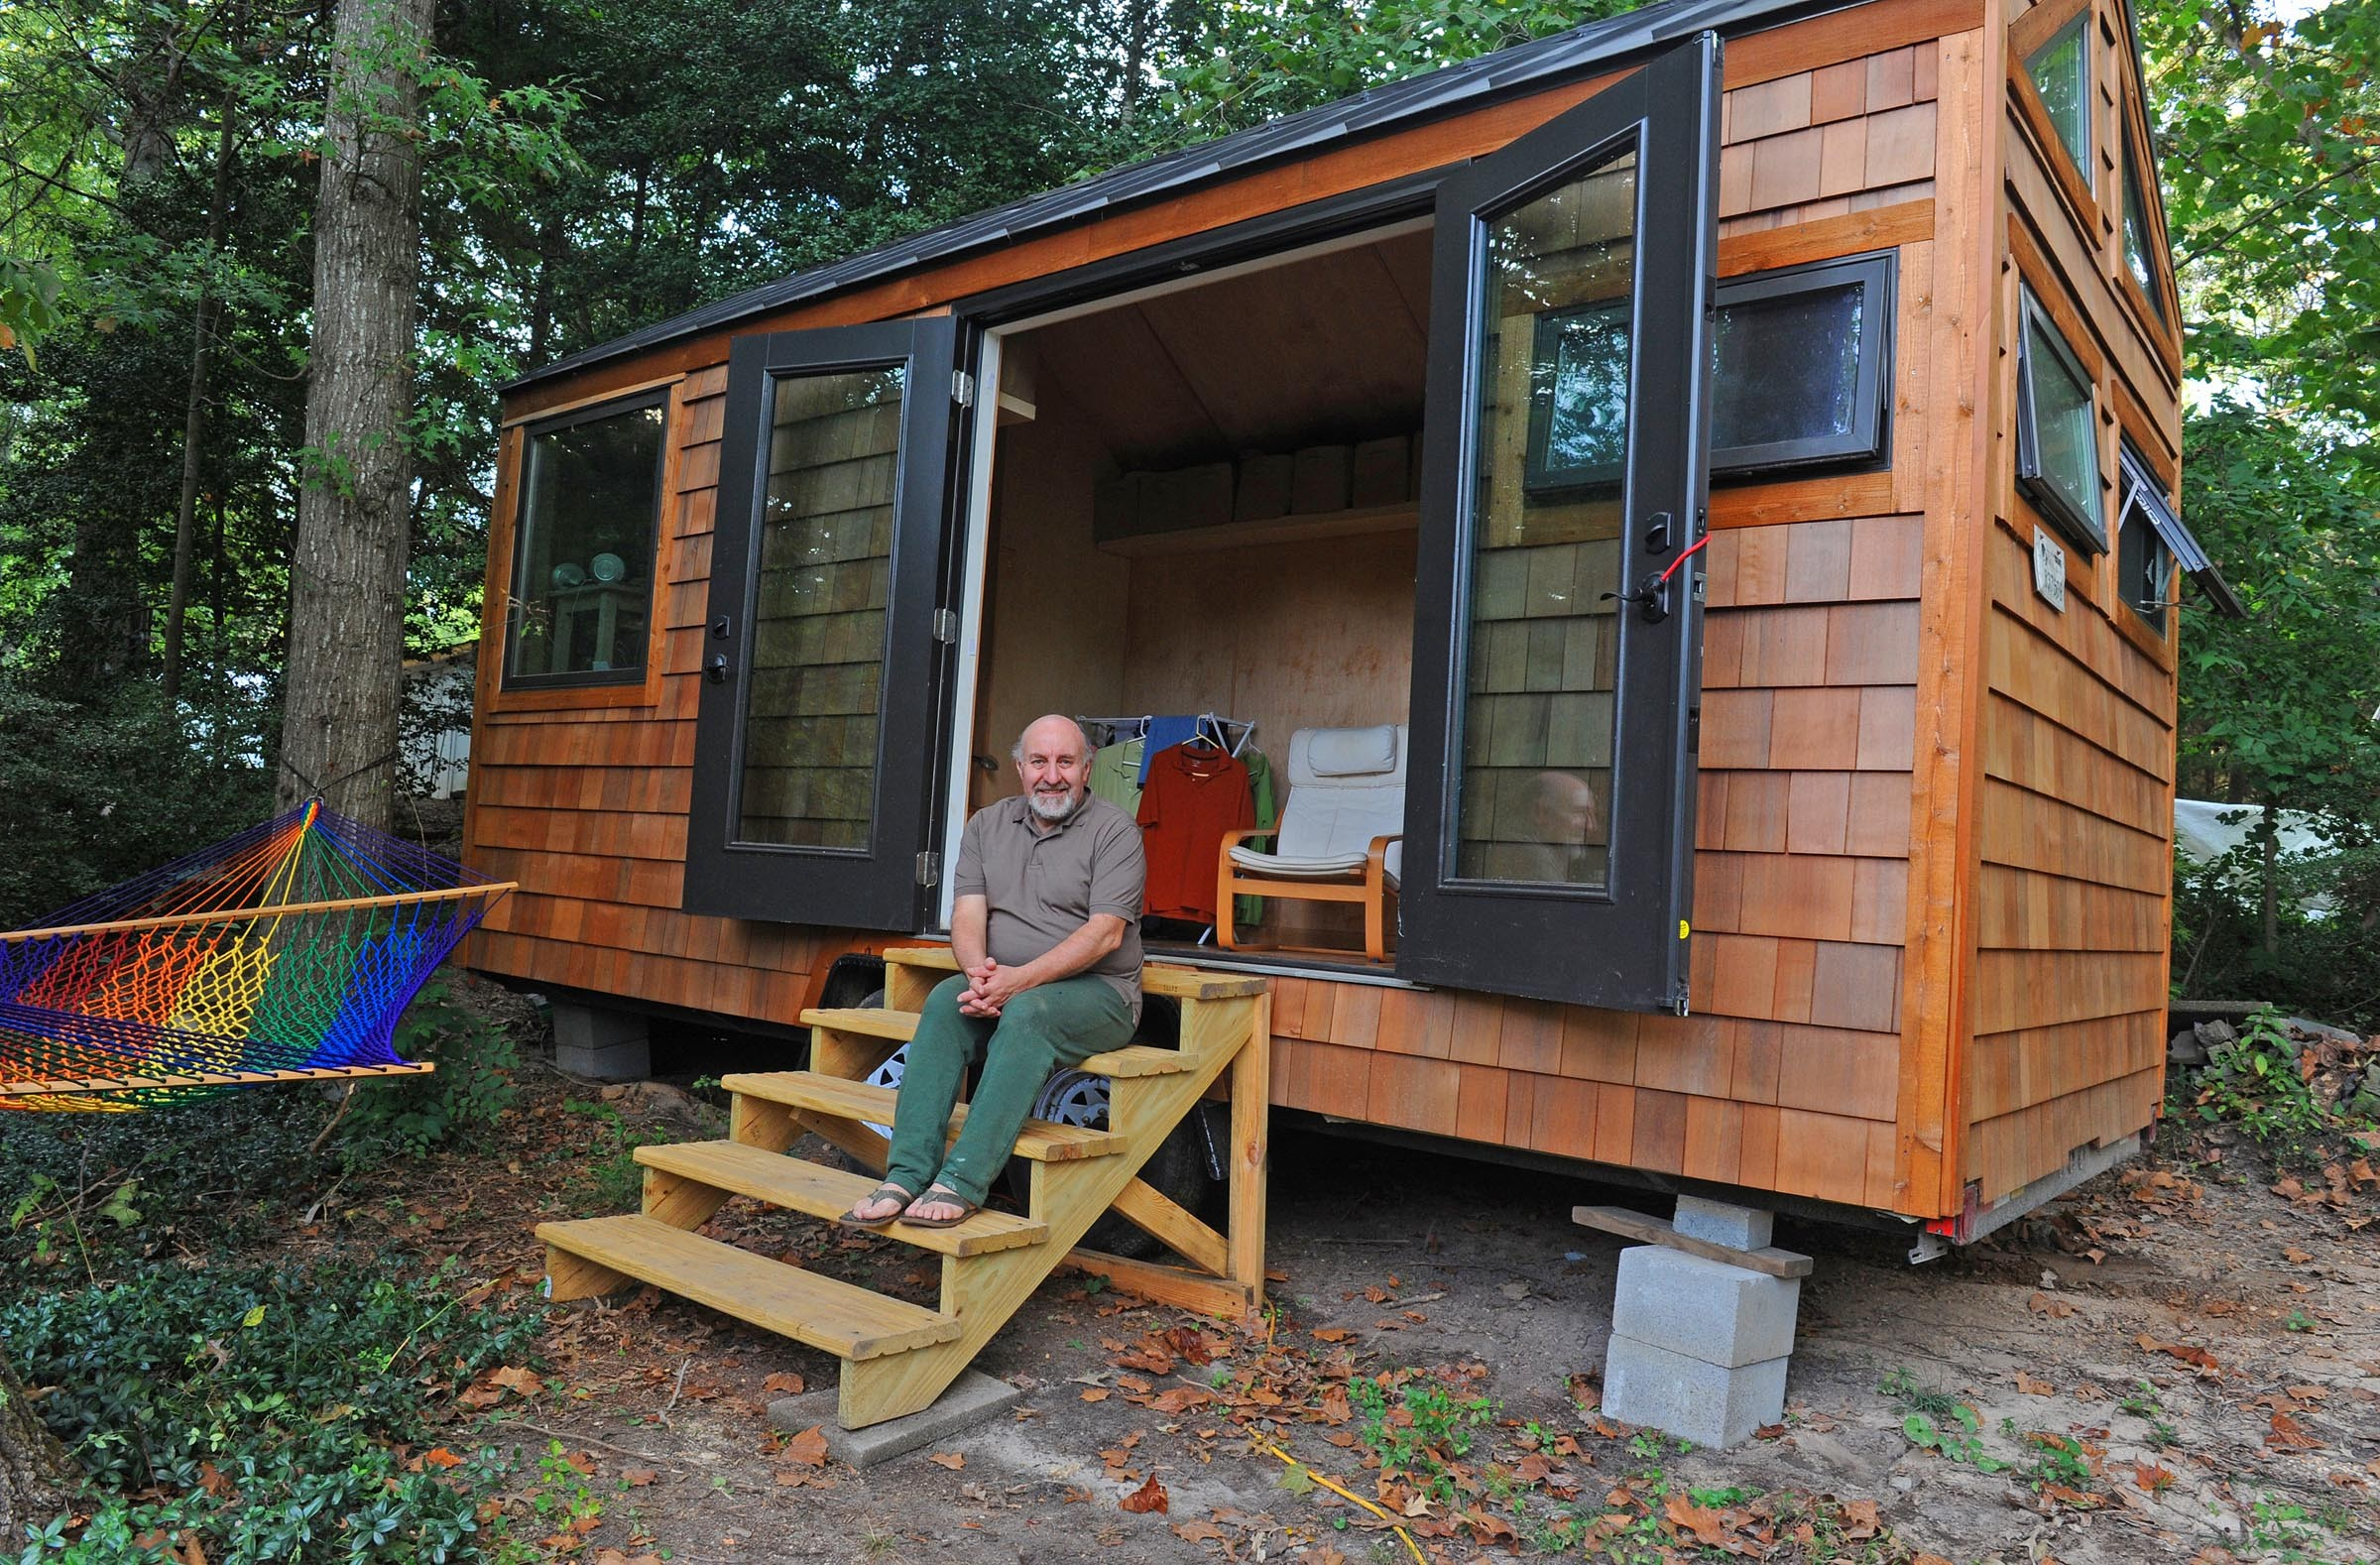 tiny house community. Click To Enlarge Partly Because Of Environmental Concerns, Derryl Cocks Lives In A Local Tiny House Community Where